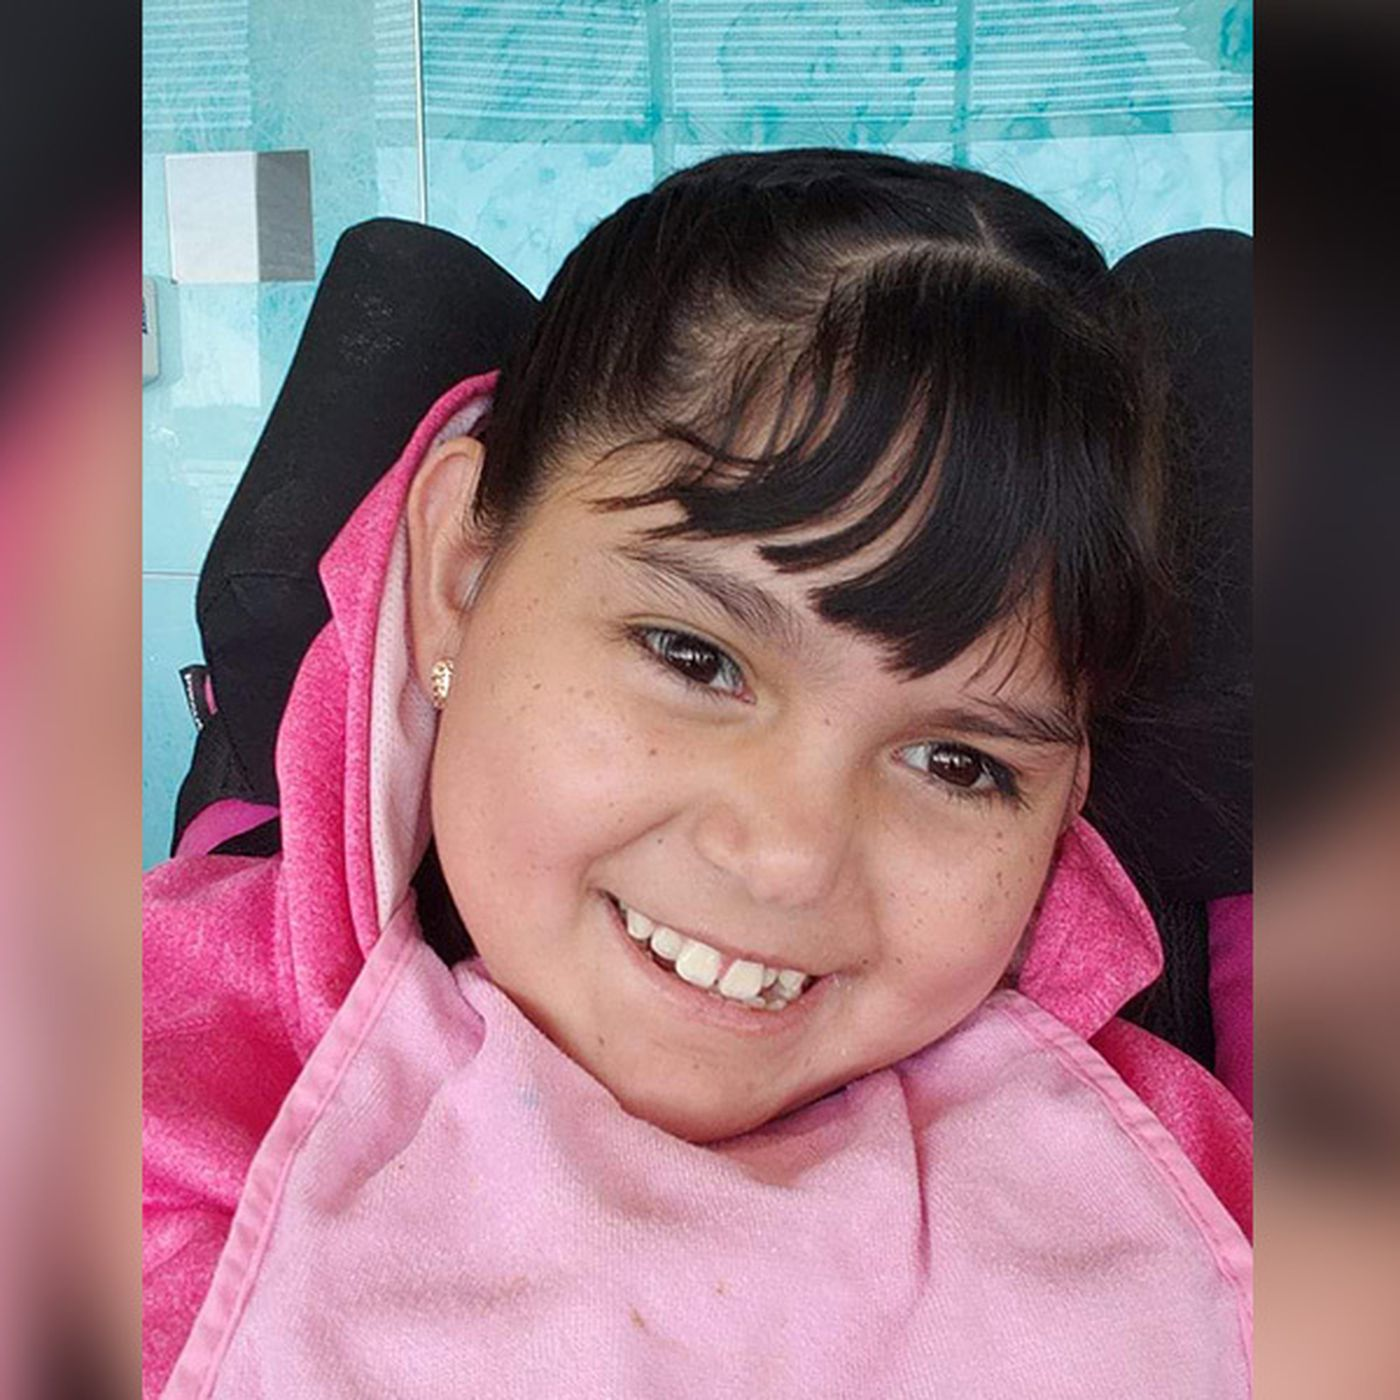 A Denver High School Student Known For Her Smile Has Died Of Covid 19 Chalkbeat Colorado